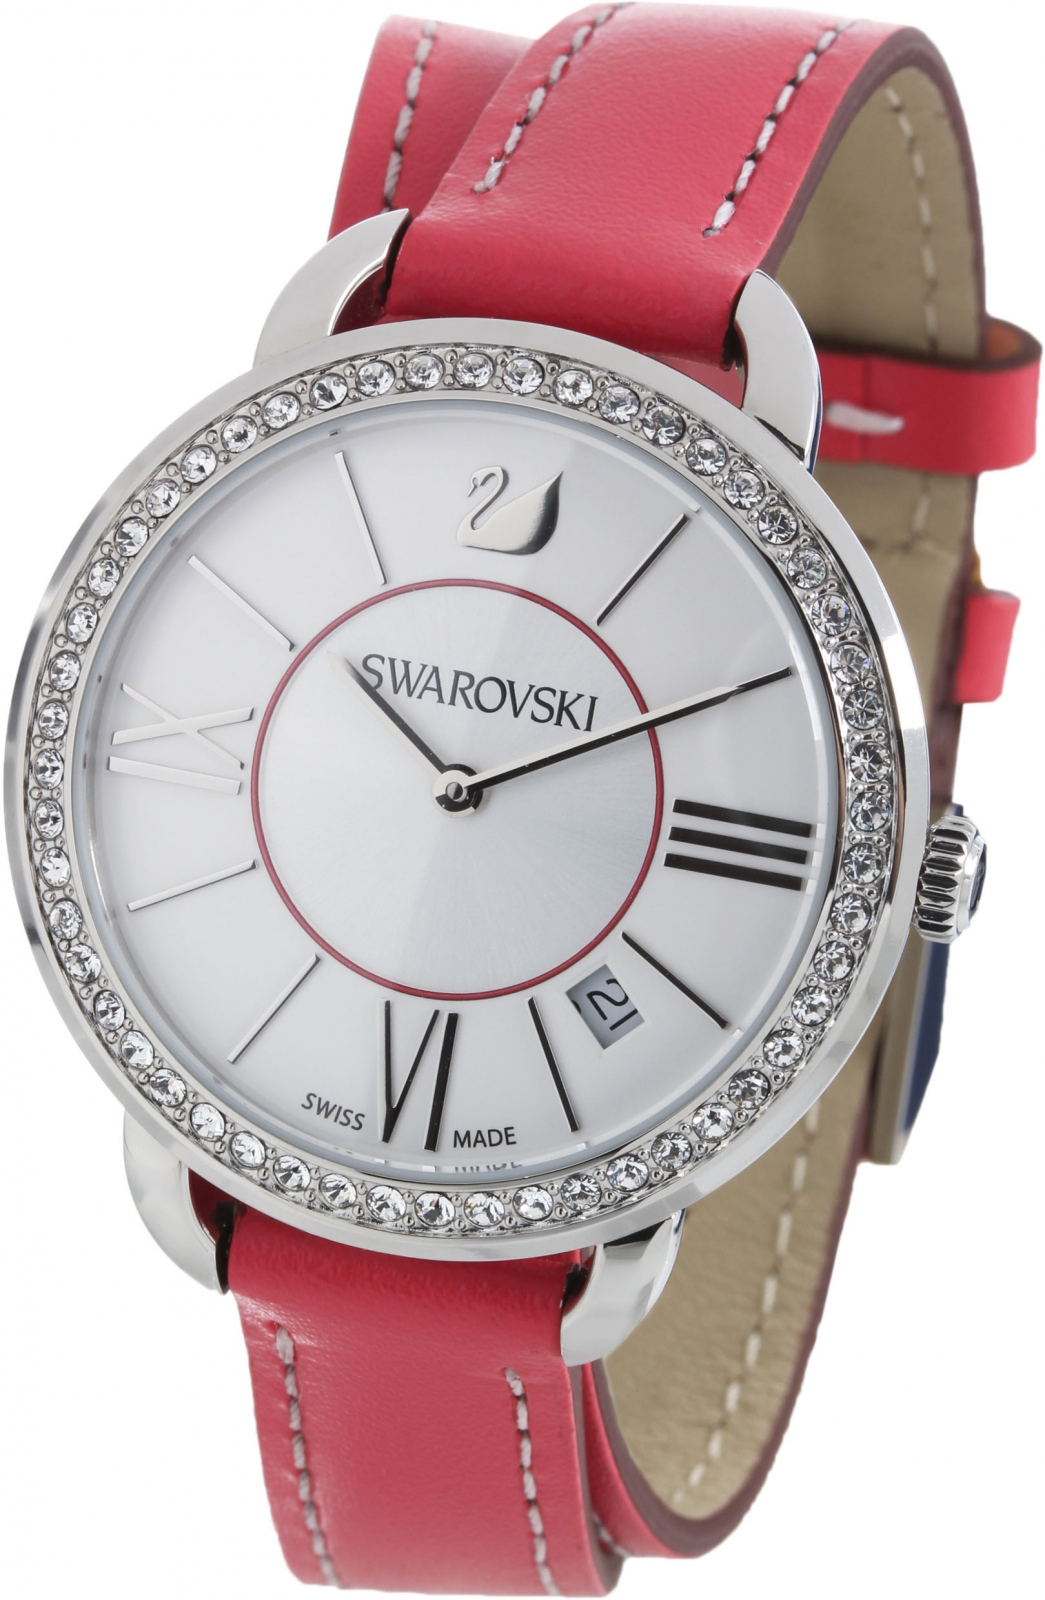 Купить Швейцарские часы Swarovski Aila Day Double Tour Berry  5095942, Swarovski Aila Day Double Tour Berry  5095942